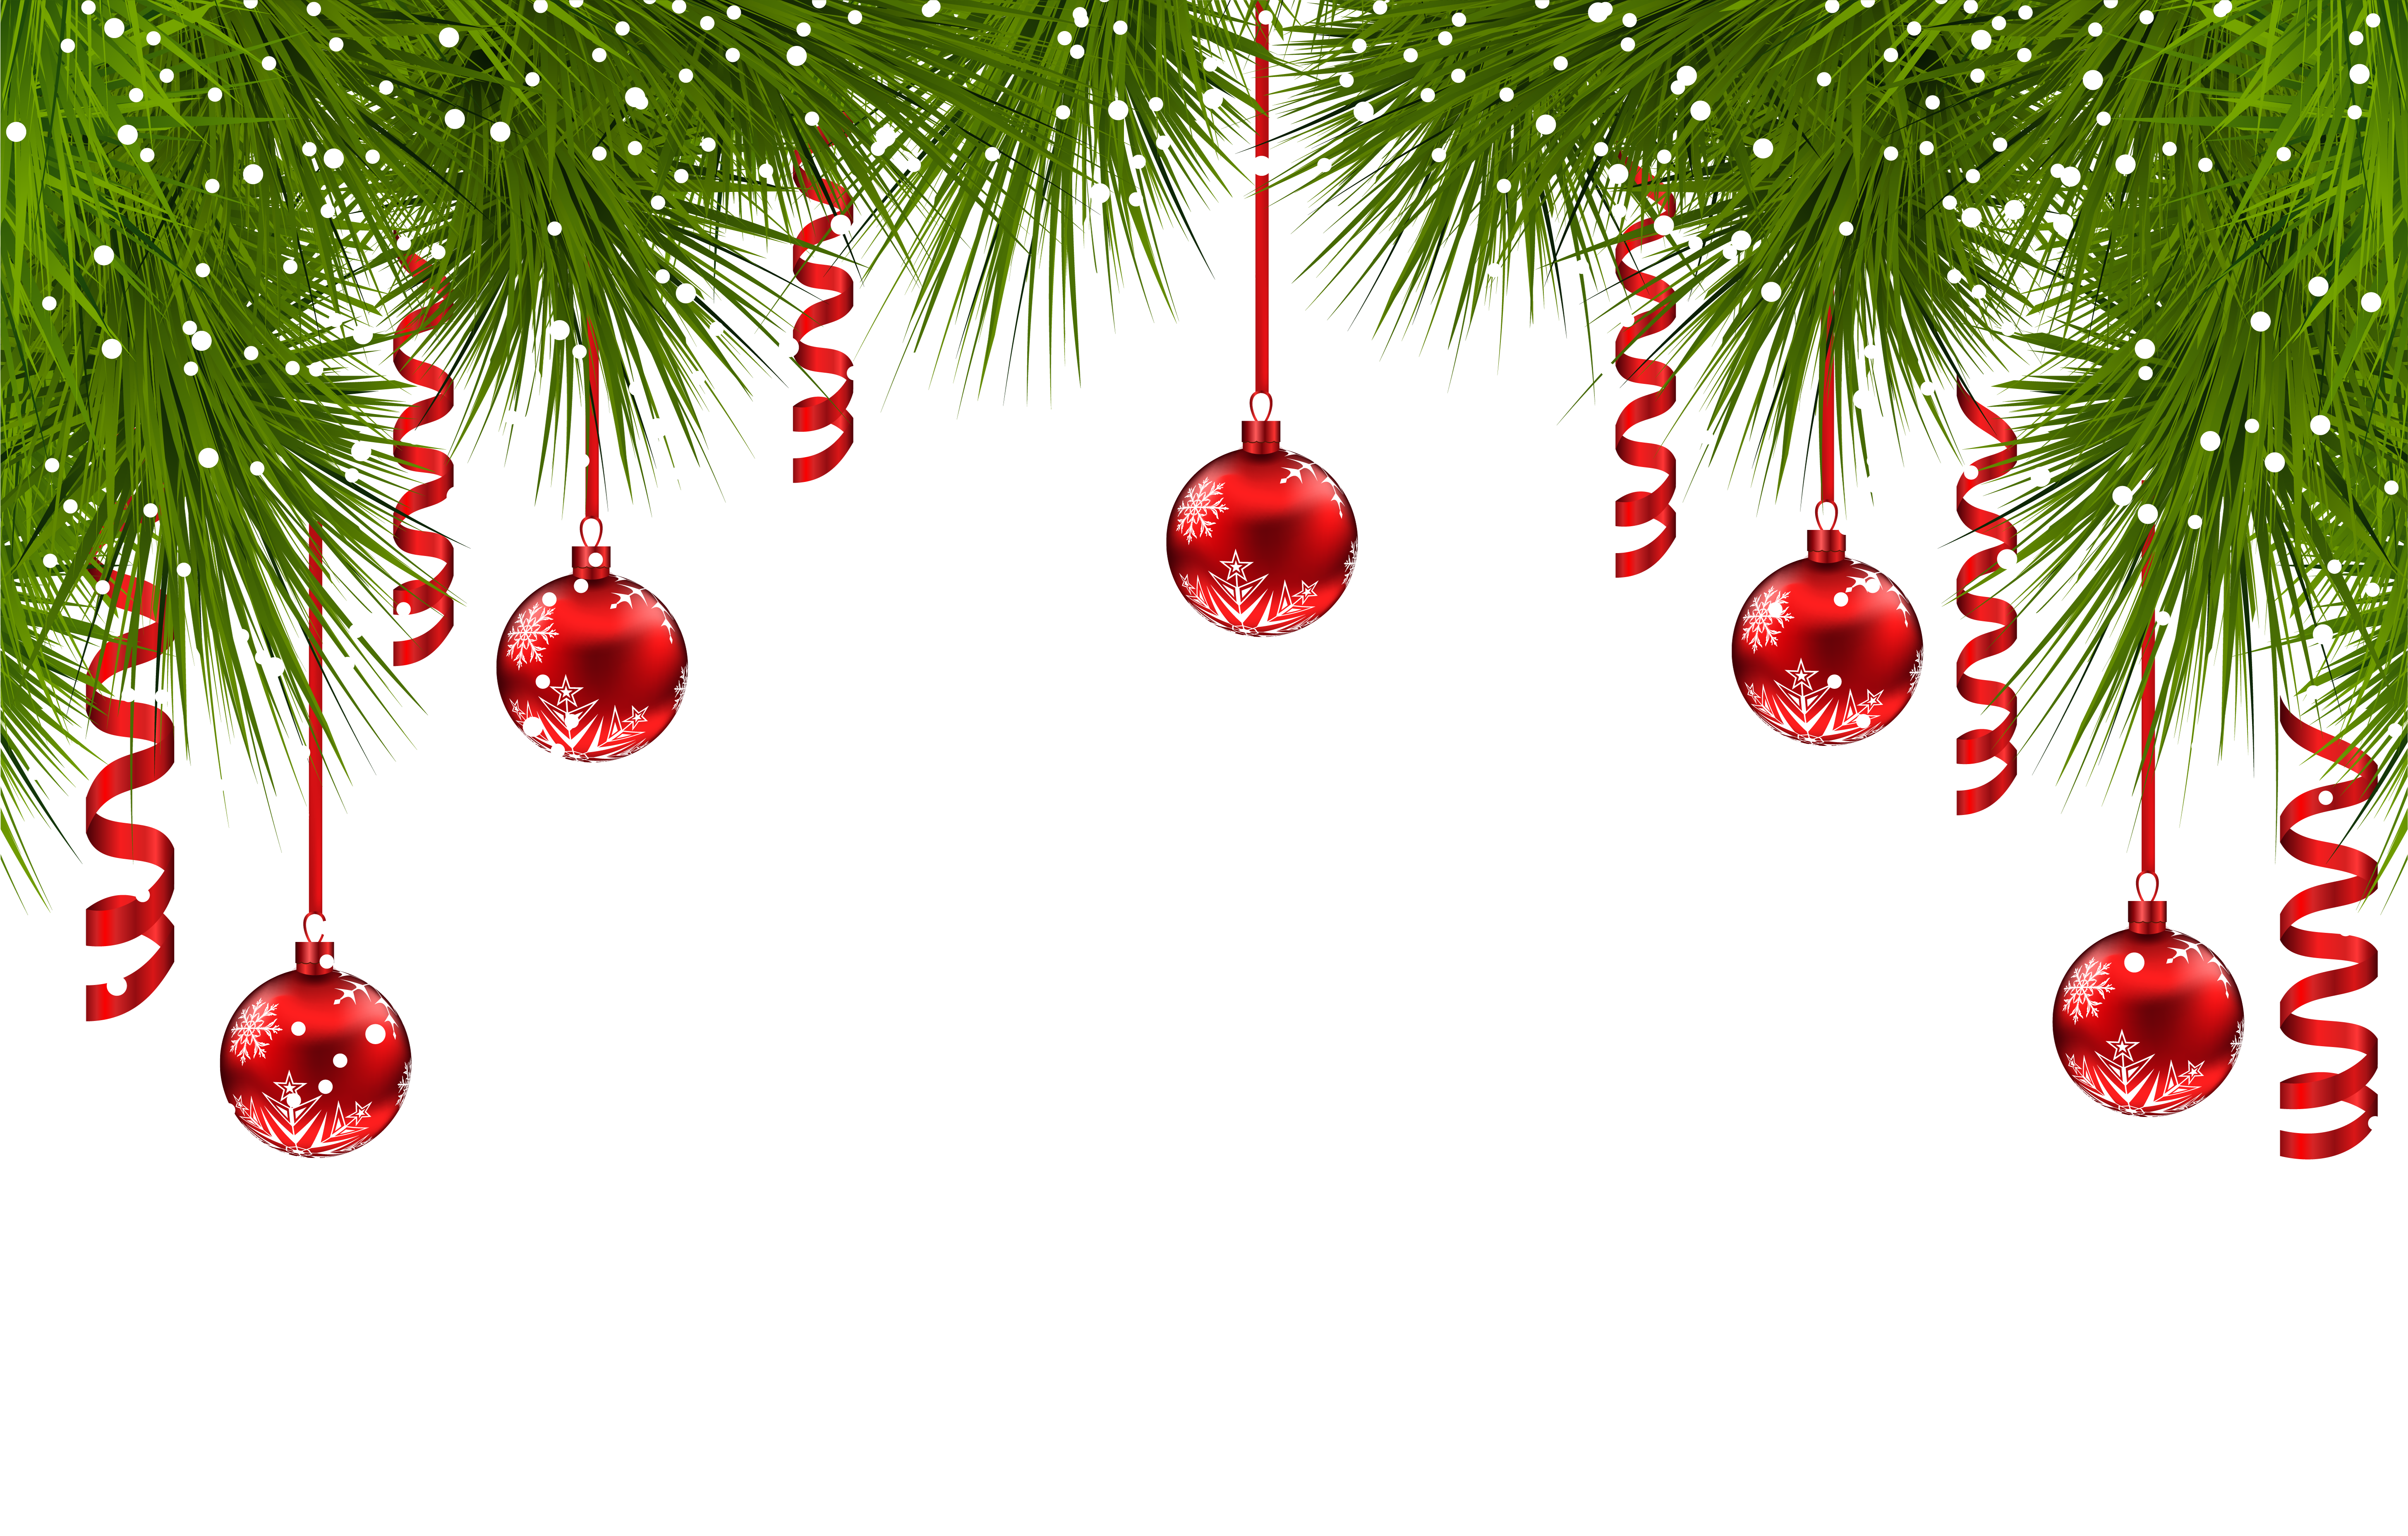 Christmas Png Images & Free Christmas Images.png ...